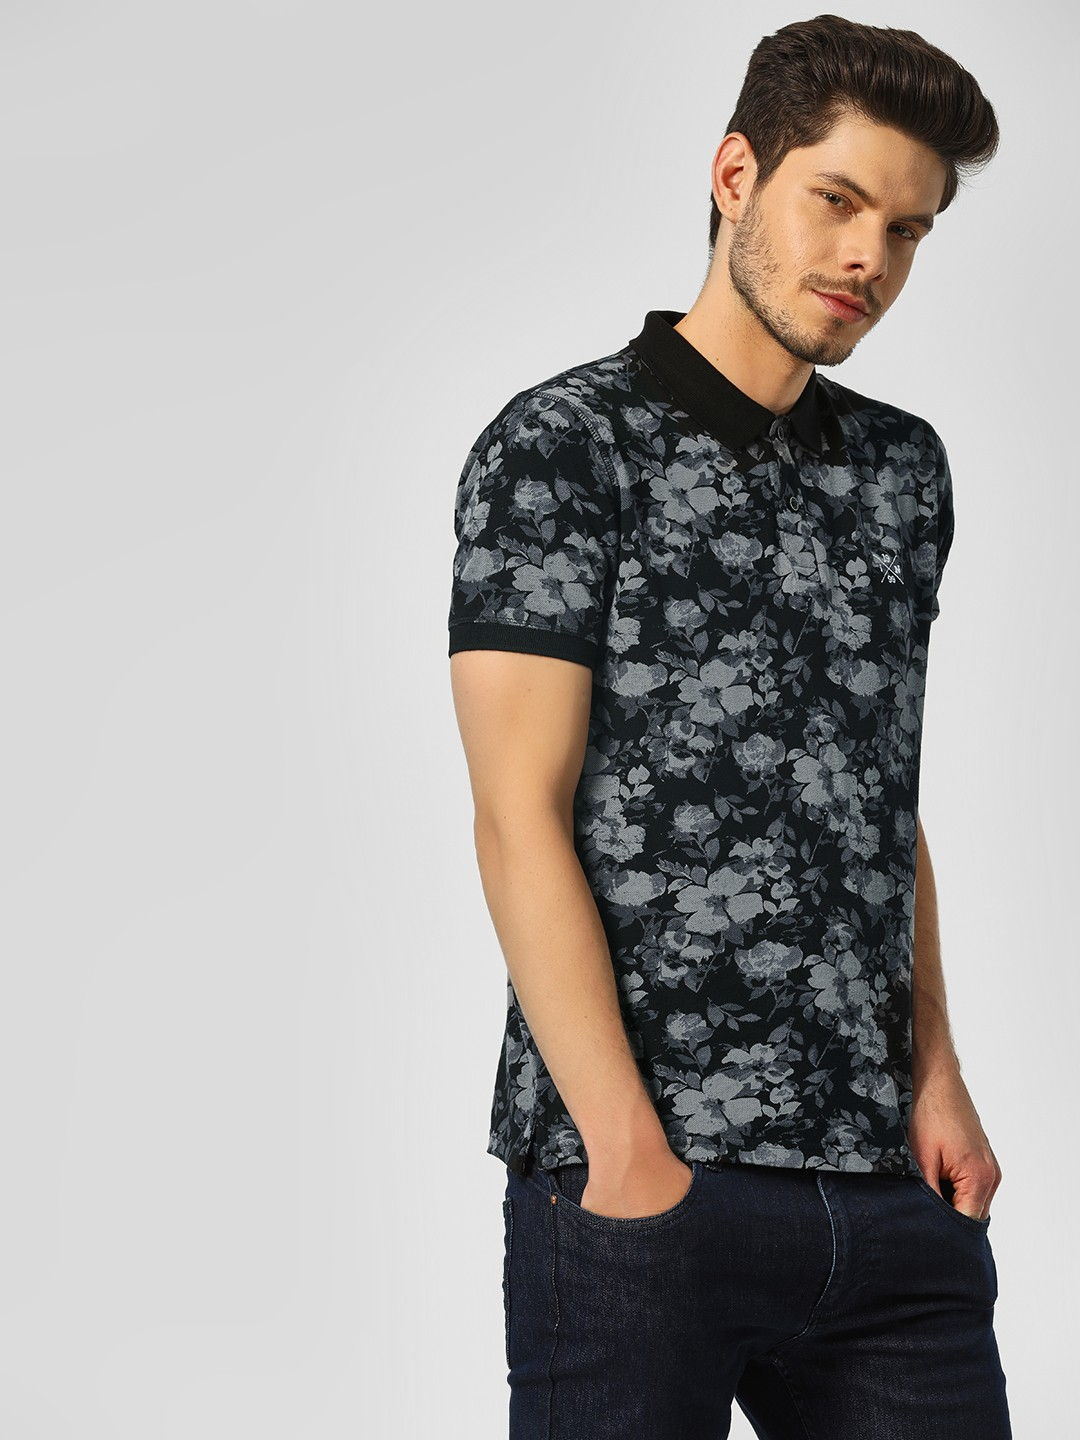 Indigo Nation Black Floral Printed Polo Shirt 1